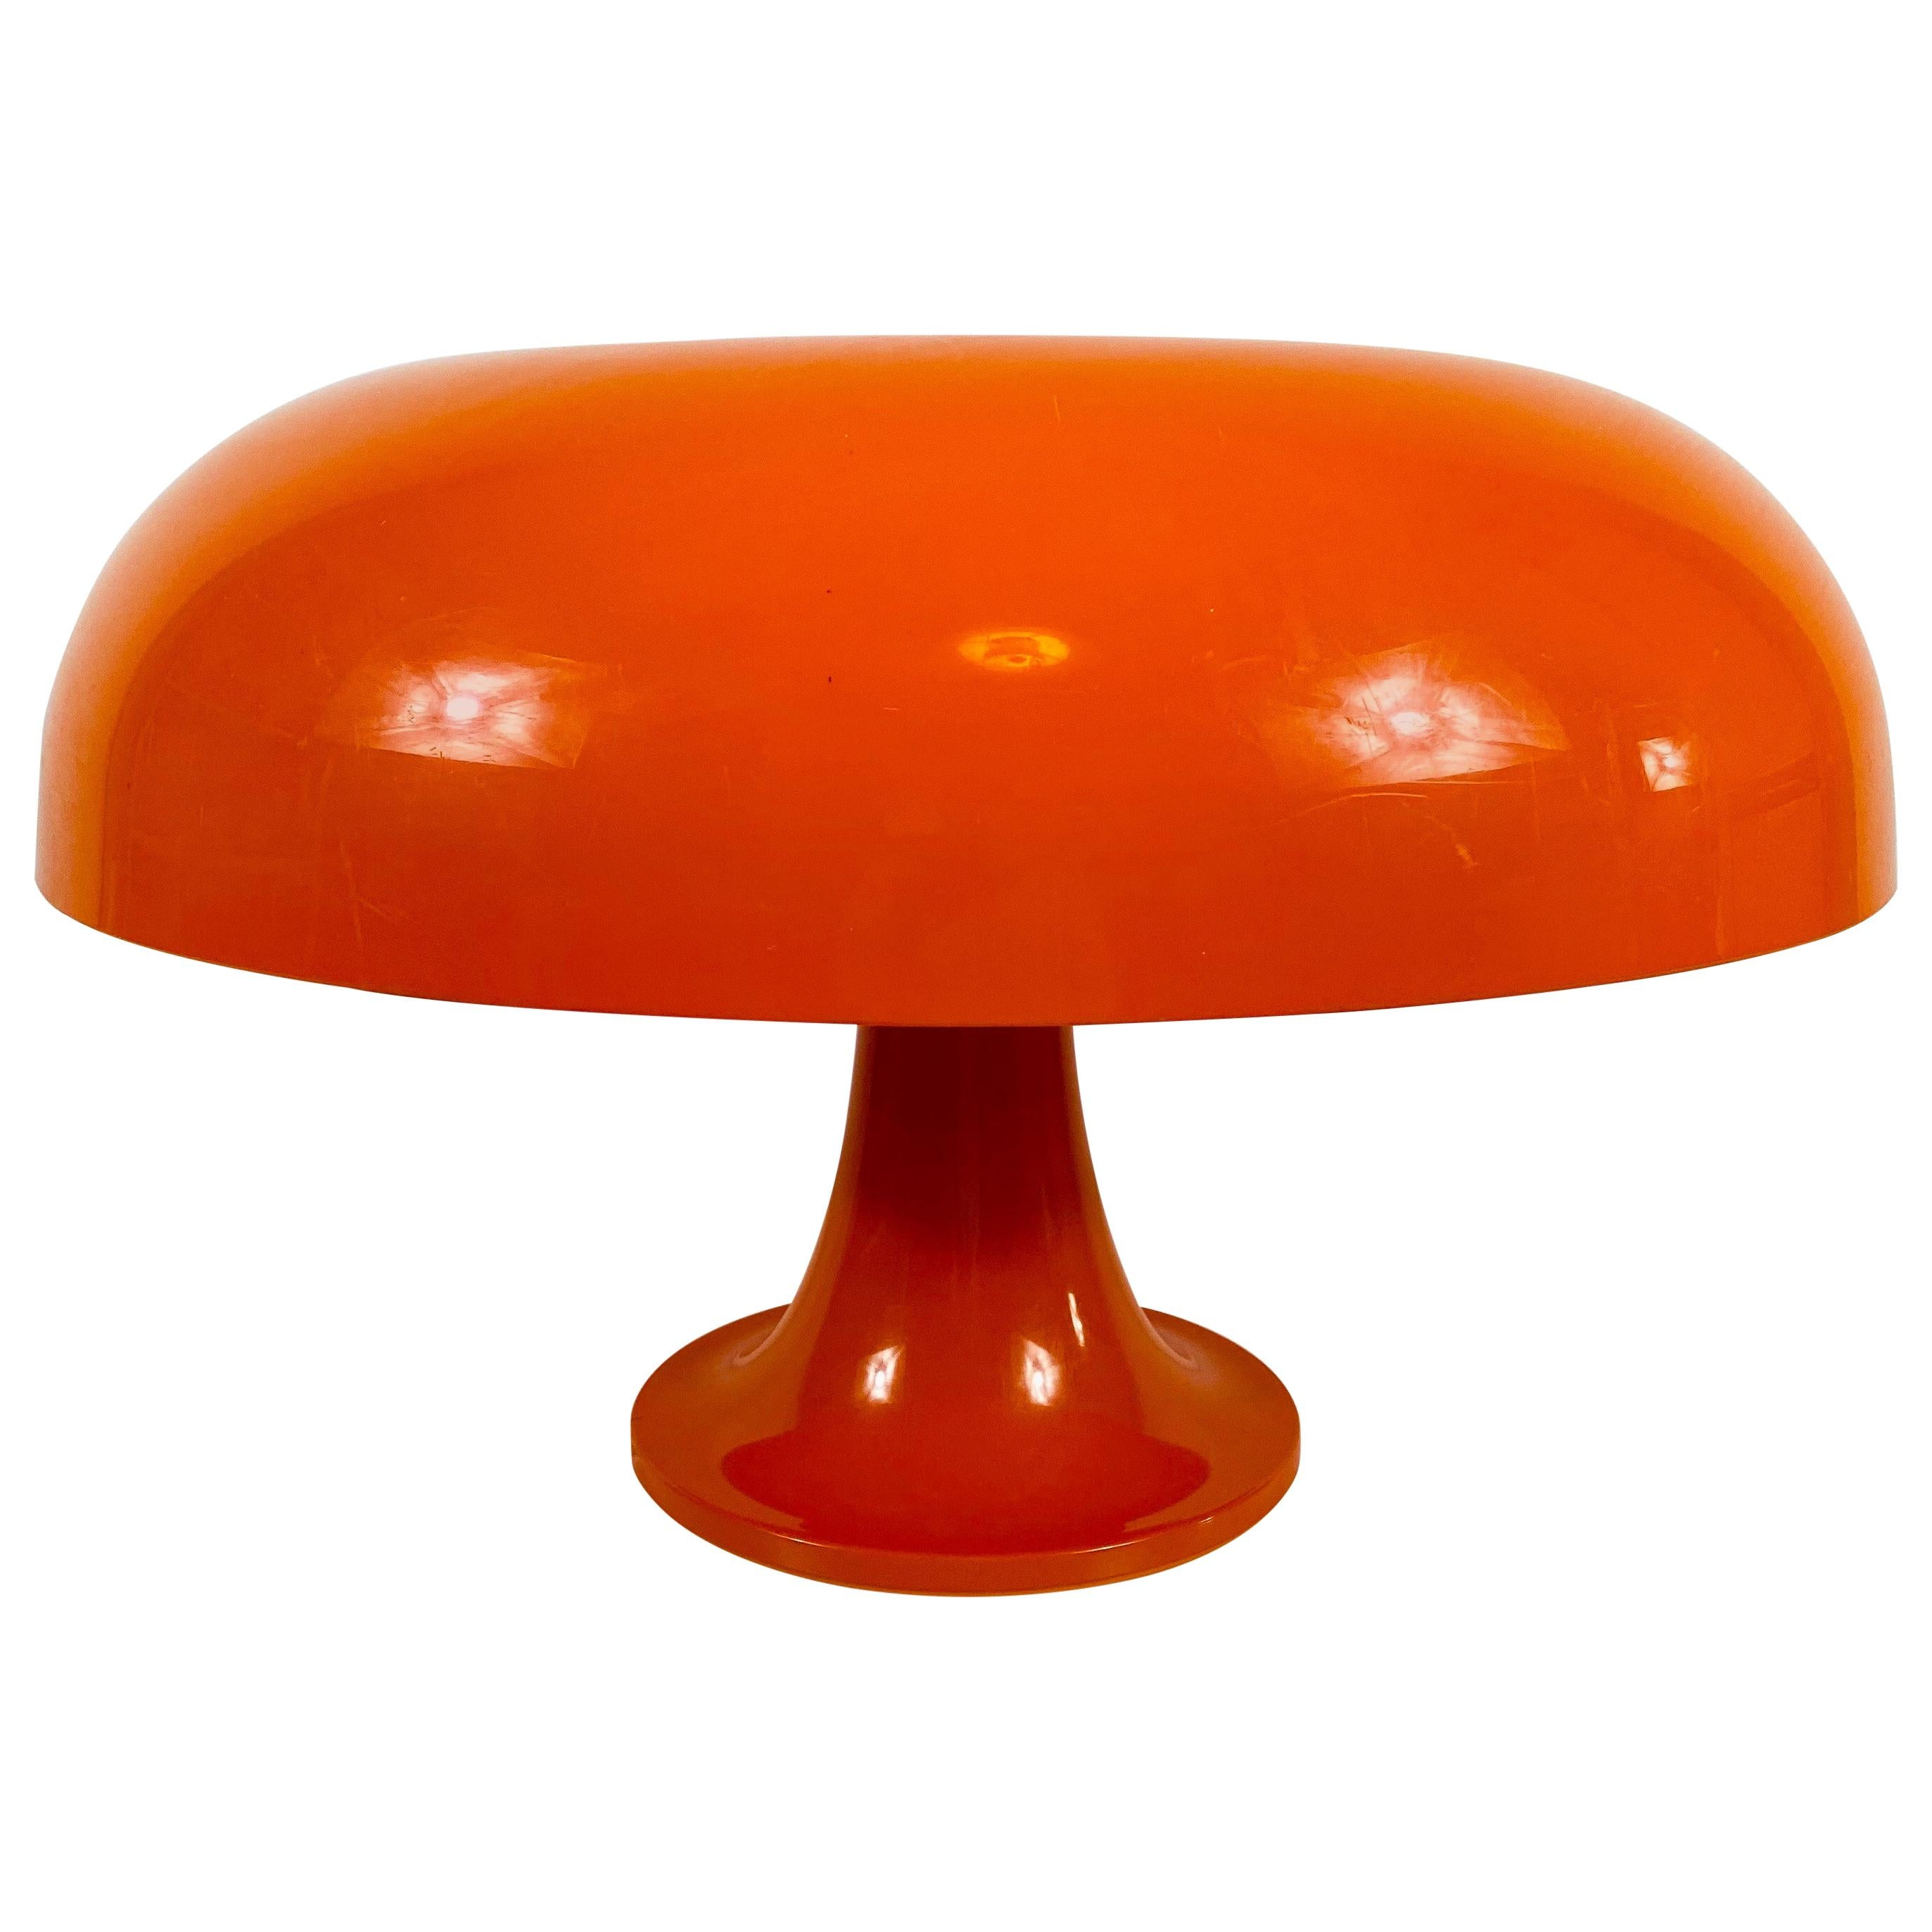 Large Nesso Table by Giancarlo Mattioli for Artemide, Italy, 1970s